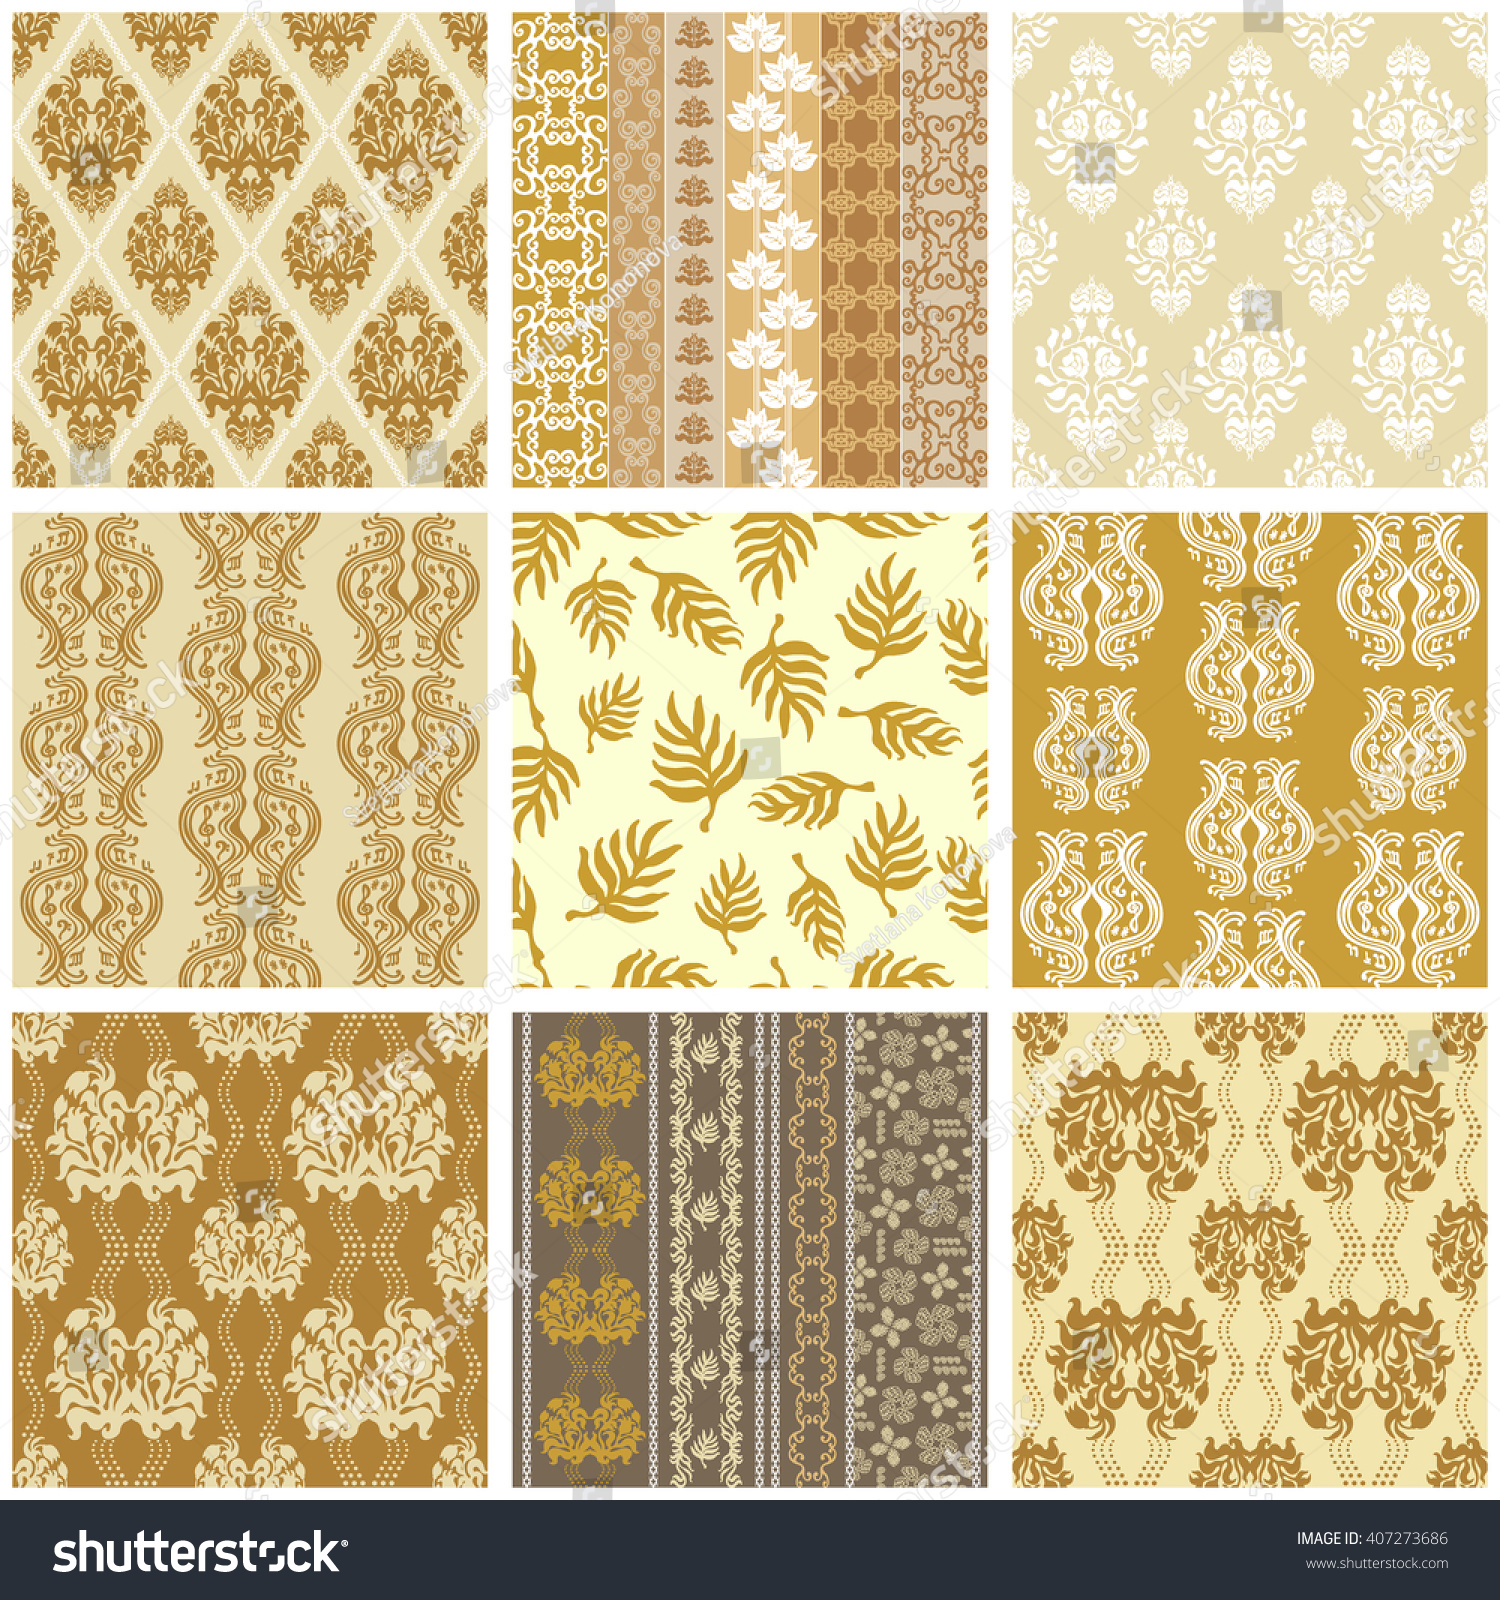 Italian ornaments - Big Set Of Golden Victorian Vintage Wallpapers Seamless Floral Patterns Geometric Borders Damask